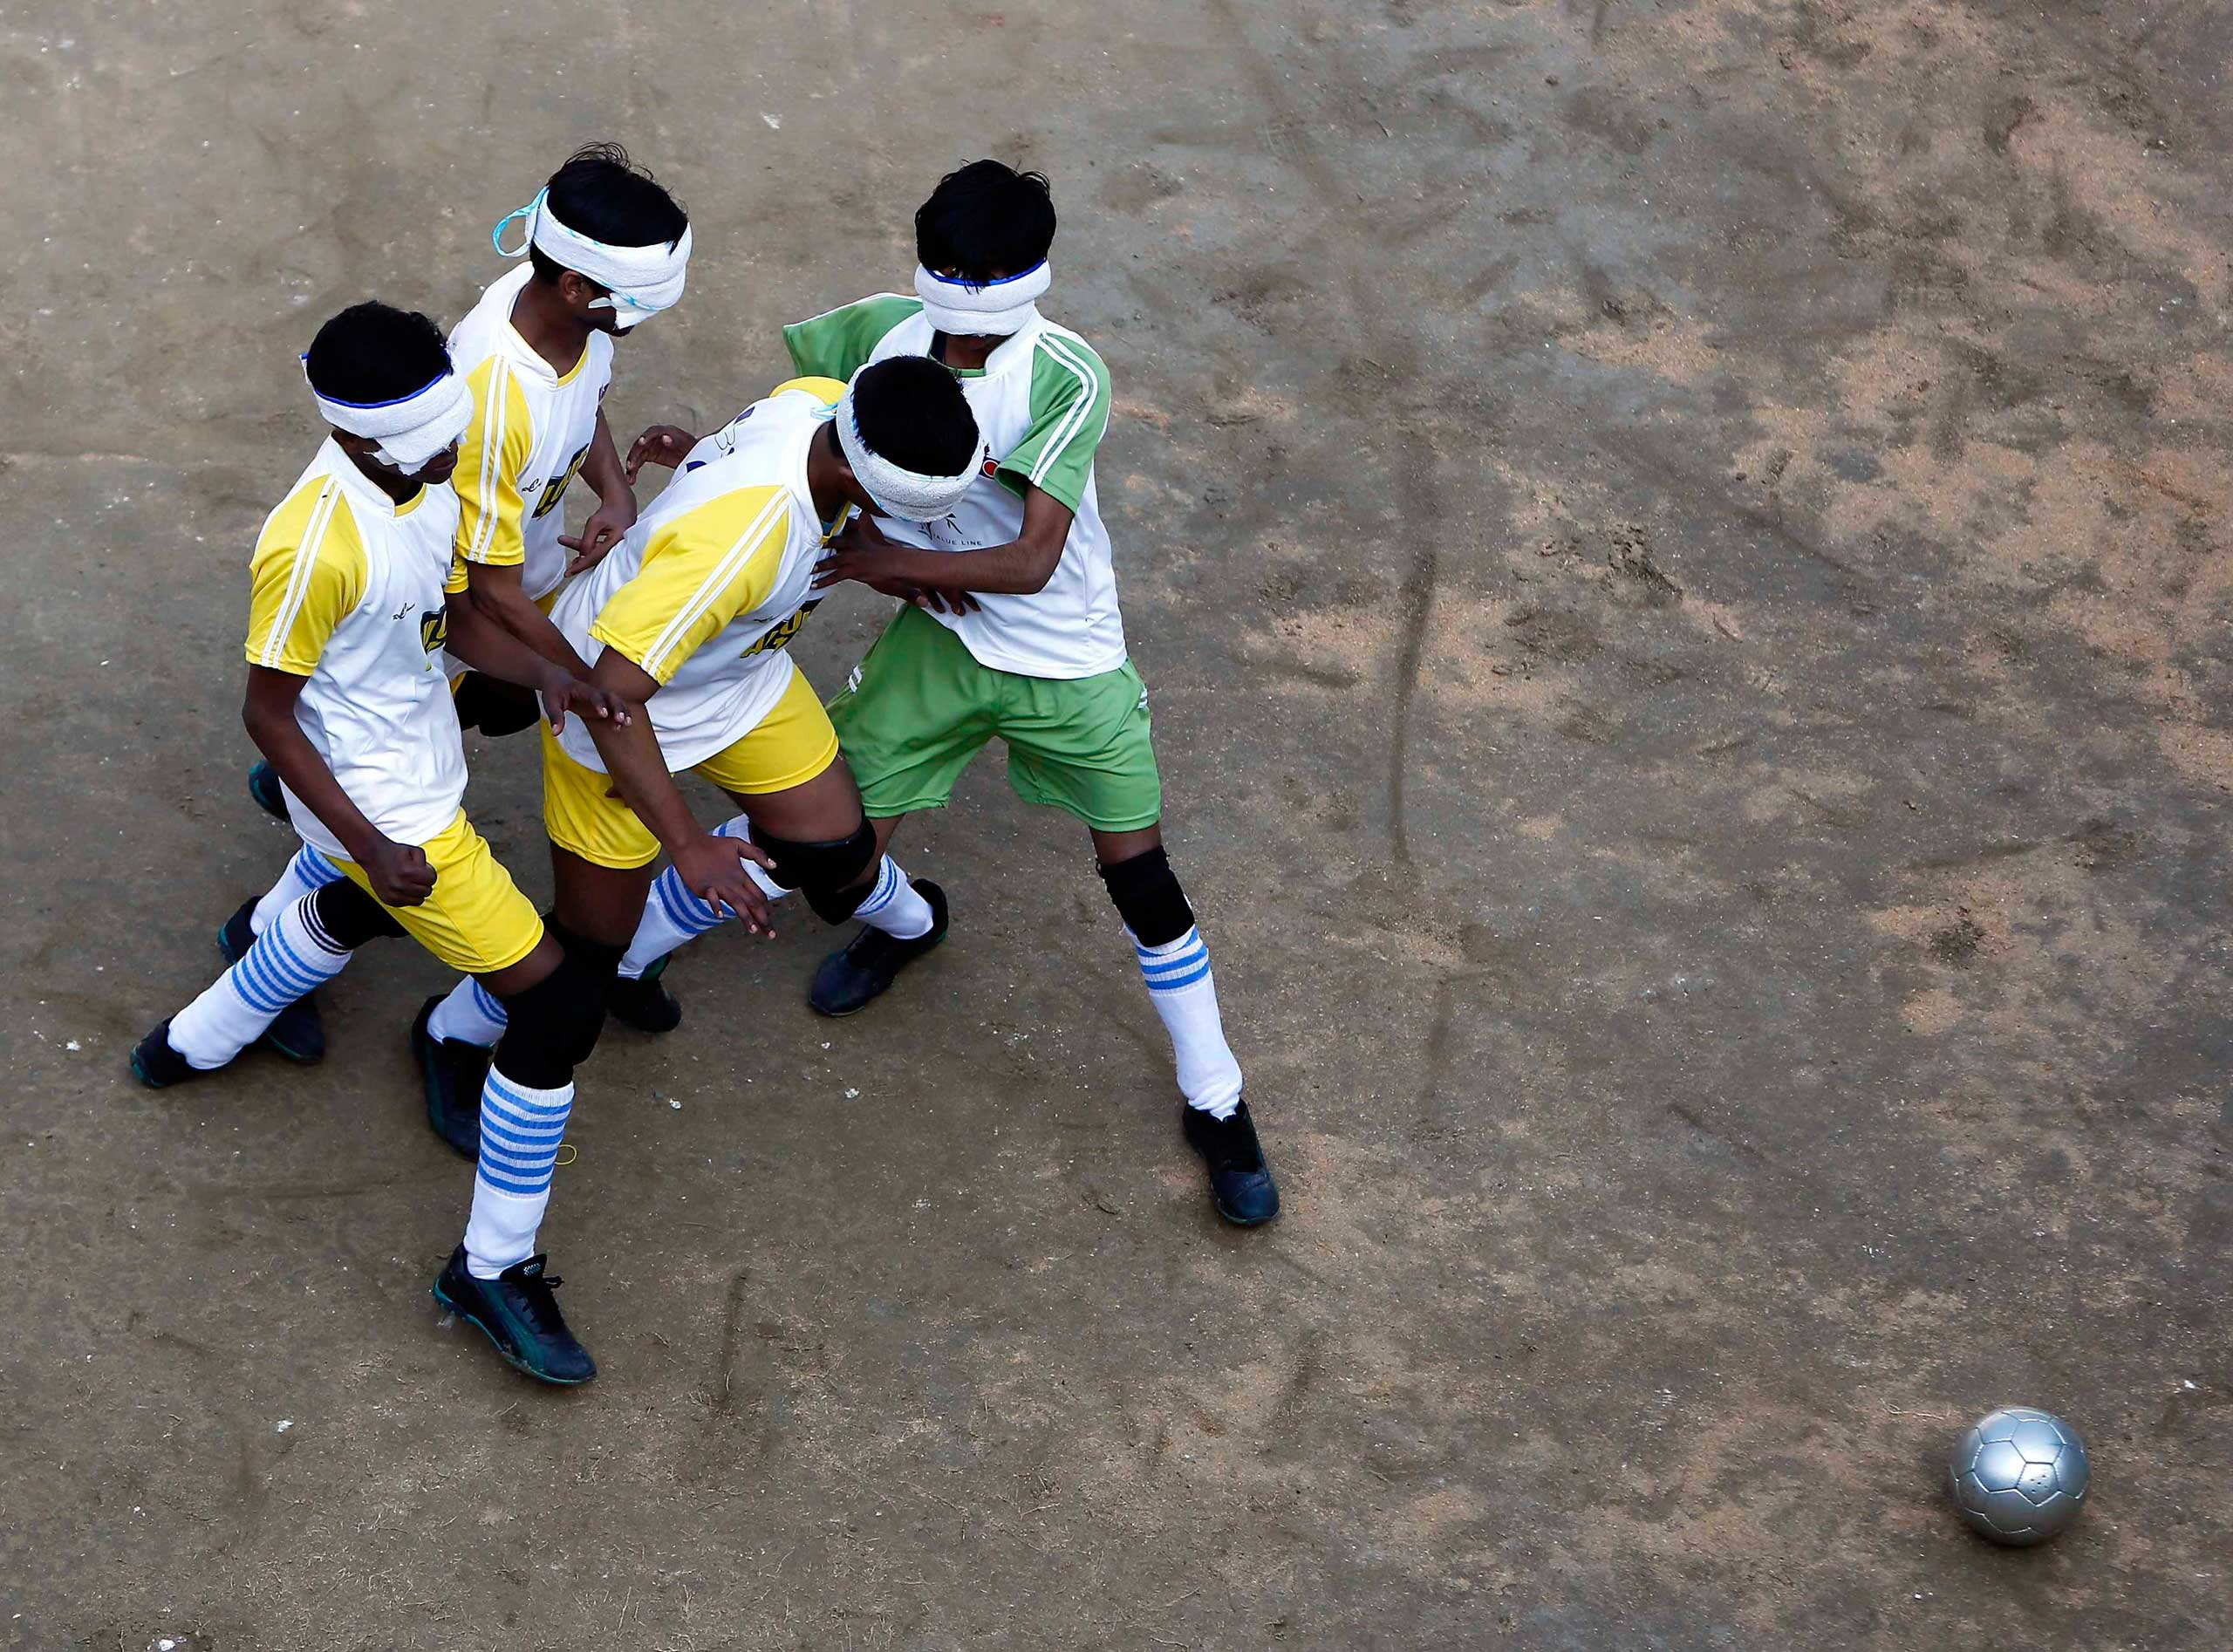 Jan. 5, 2015. Visually impaired students of a school for the blind fight for the ball during a soccer match inside their school in New Delhi, India.